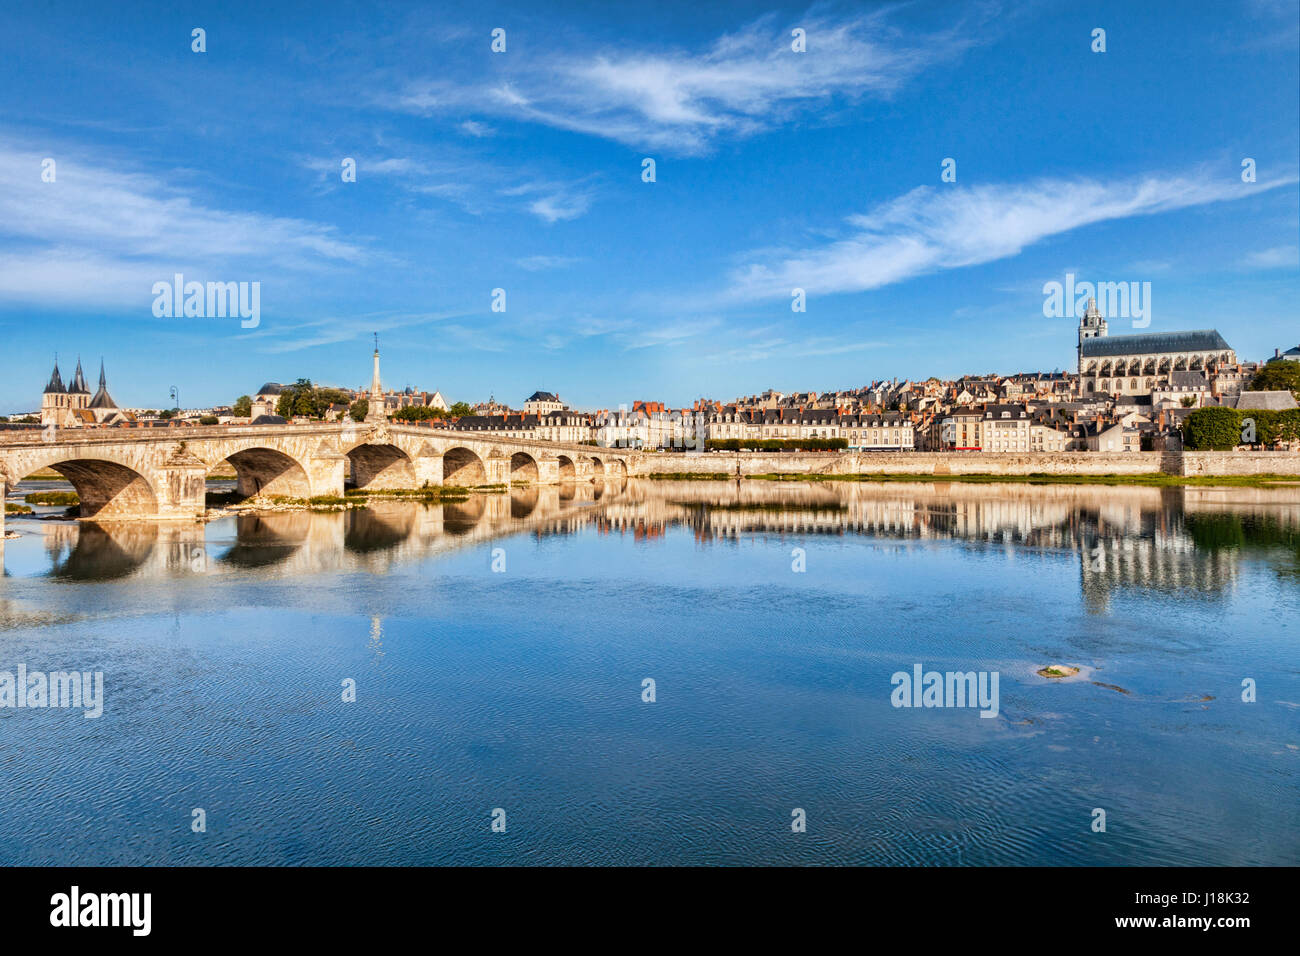 The old town of Blois, Loire Valley, France - Stock Image